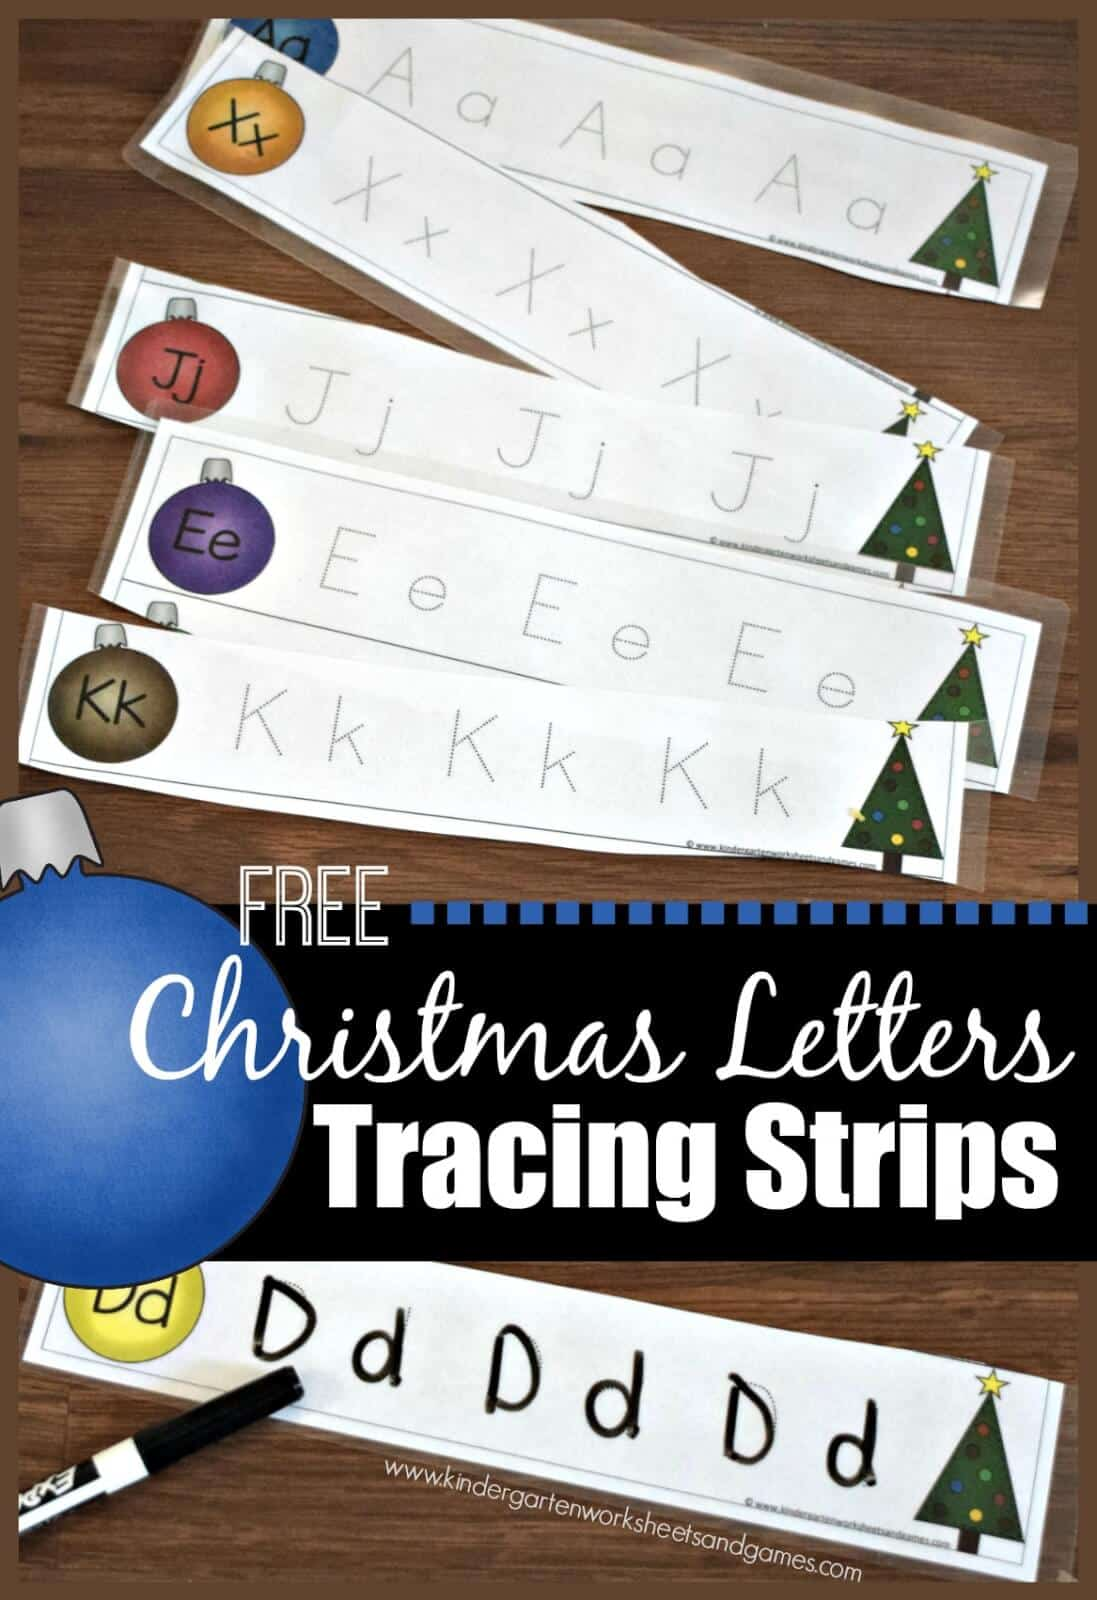 FREE Christmas Letter Tracing Strips - kids will have fun practicing writing uppercase and lowercase alphabet letters with these fun, LOW PREP, and reusable early learning activity. This is better than an alphabet worksheet for toddler, preschool, prek, kindergarten kinders, 1st grade because it is reusable. Great literacy center for December, Christmas. #alphabet #christmasprintables #christmas